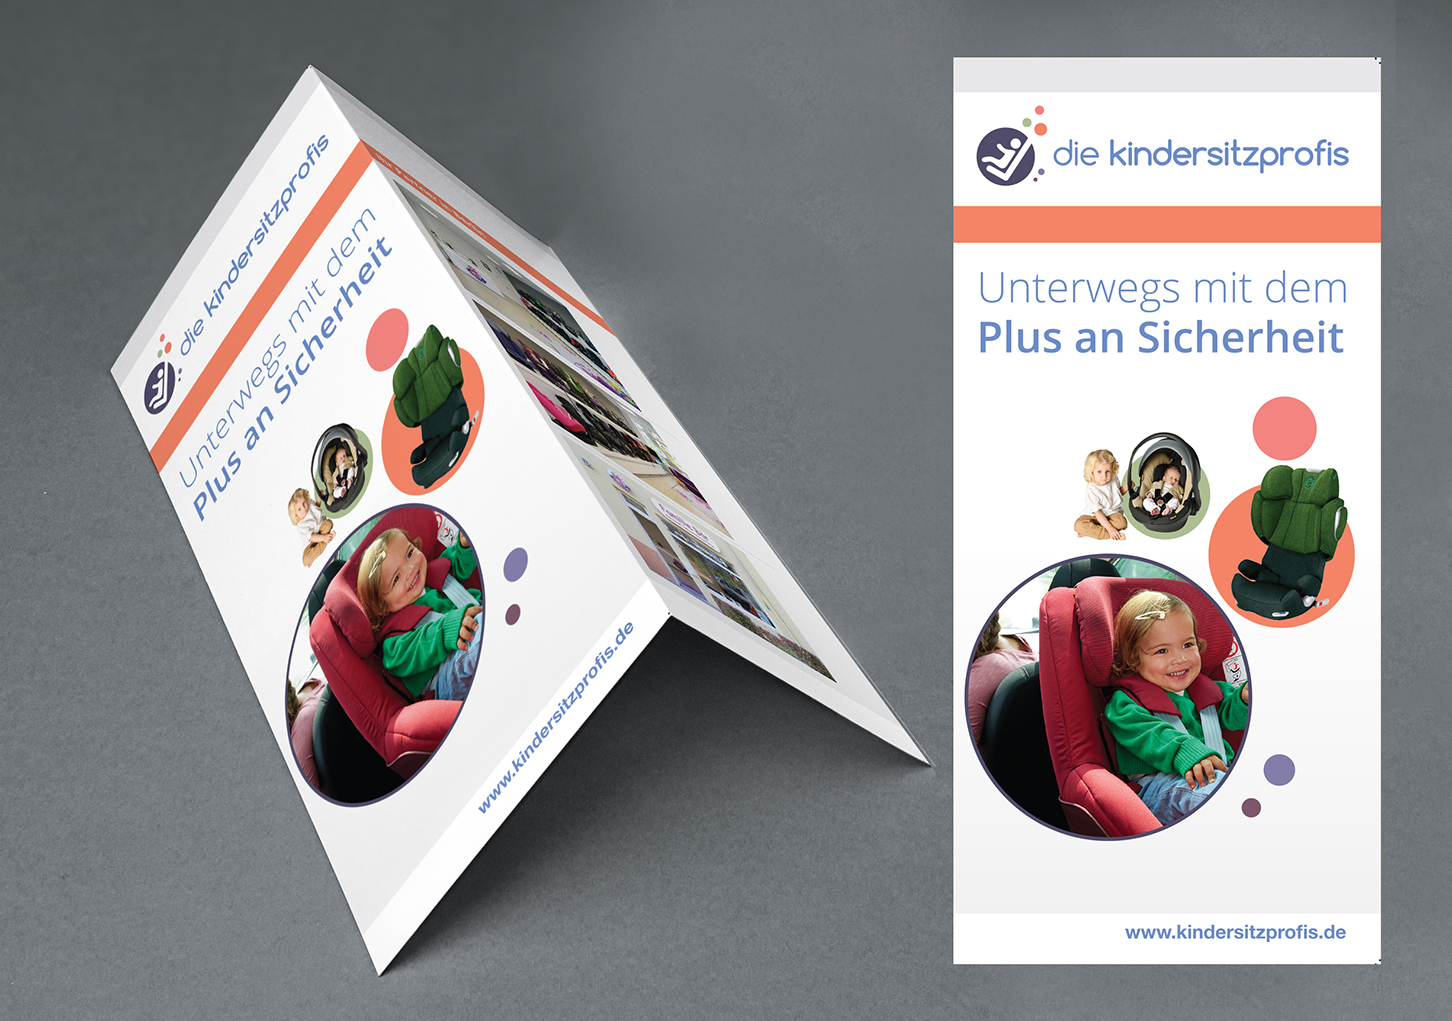 brochure flyer design by Arif inoace design studio for child seat professionals die kindersitzprofis branding